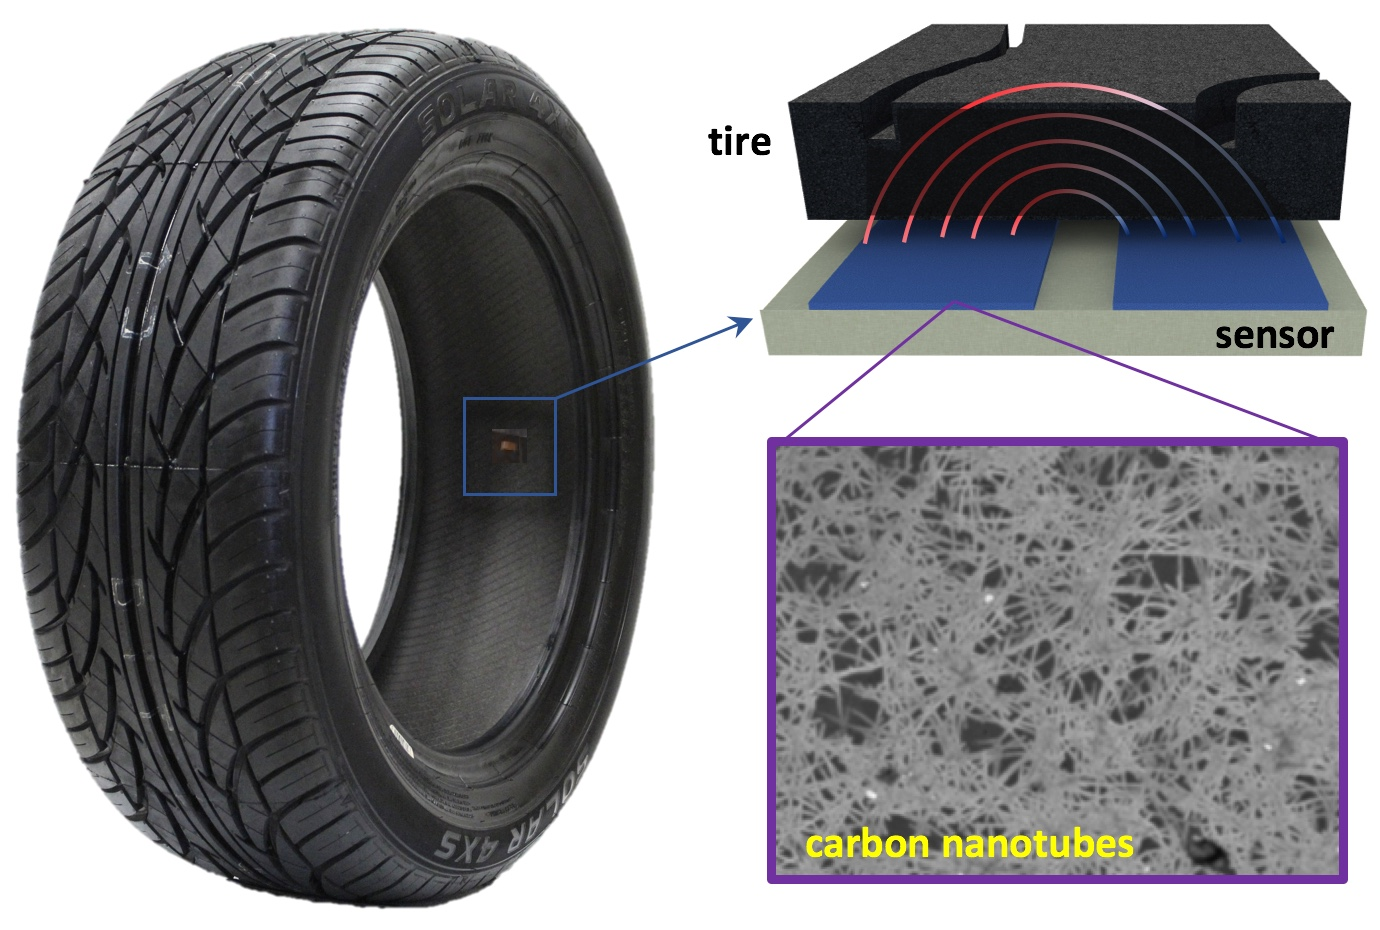 An illustration of how the novel tread sensor works. The sensor is placed on the inside of the tire, where the tire wall and tread interferes with an electric field that arcs between two electrodes. That interference can be measured to determine the thickness of the rubber with millimeter accuracy.